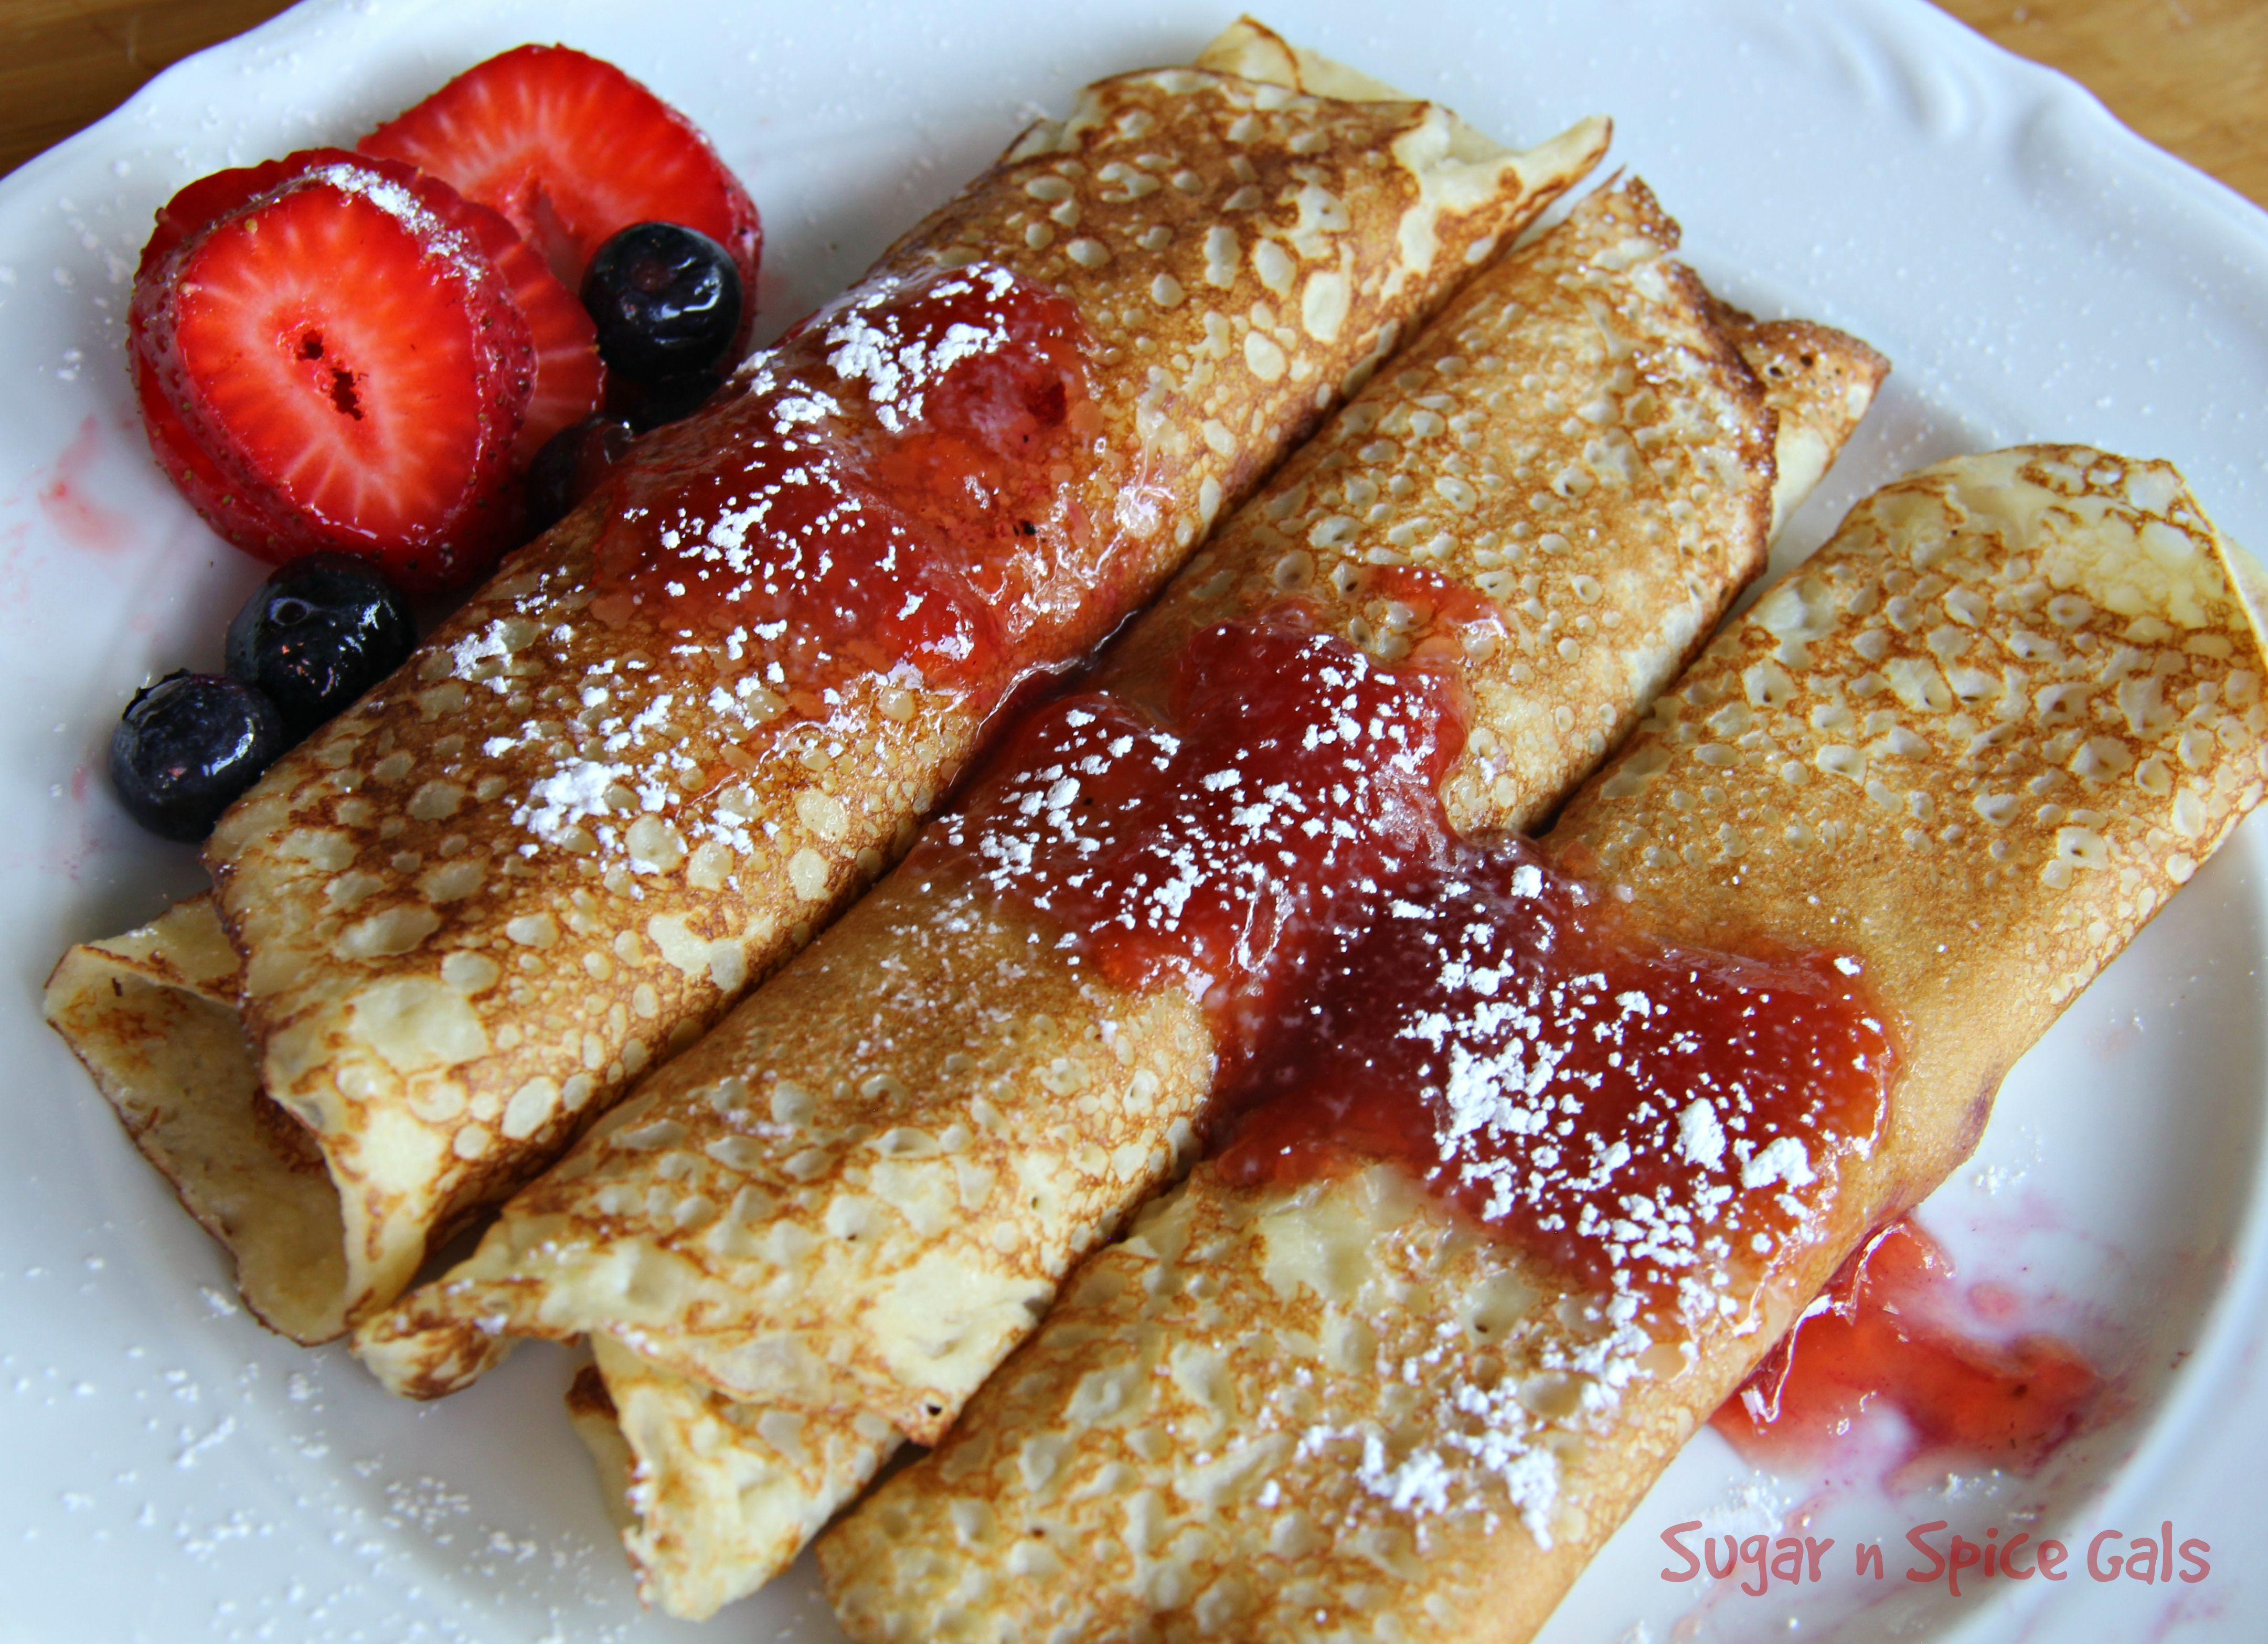 f35ae3de9b3645bf9efc6d4312a26842 - Swedish Pancakes Better Homes And Gardens